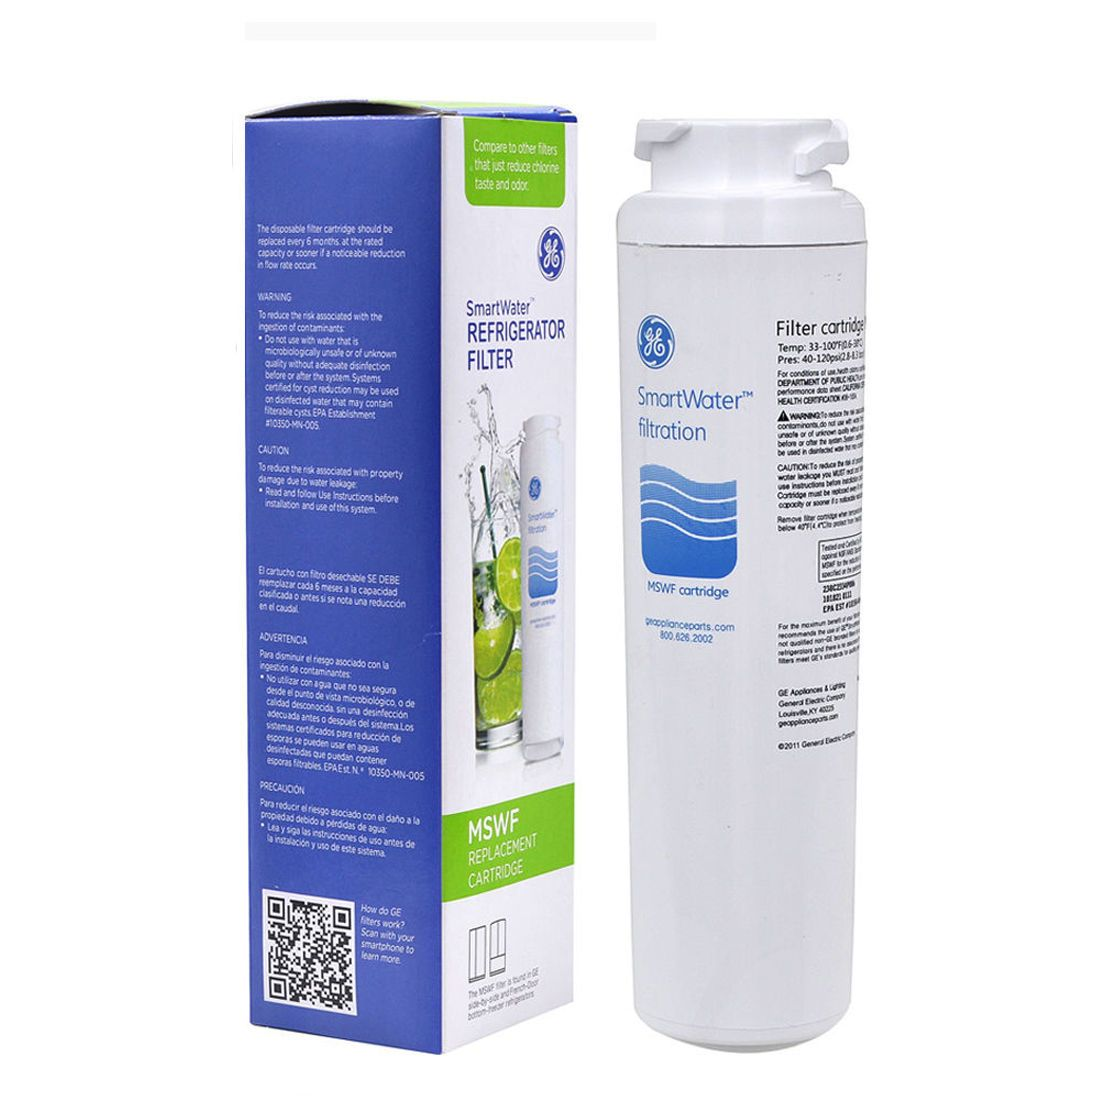 GE MSWF Refrigerator Water Filter (1-Pack)